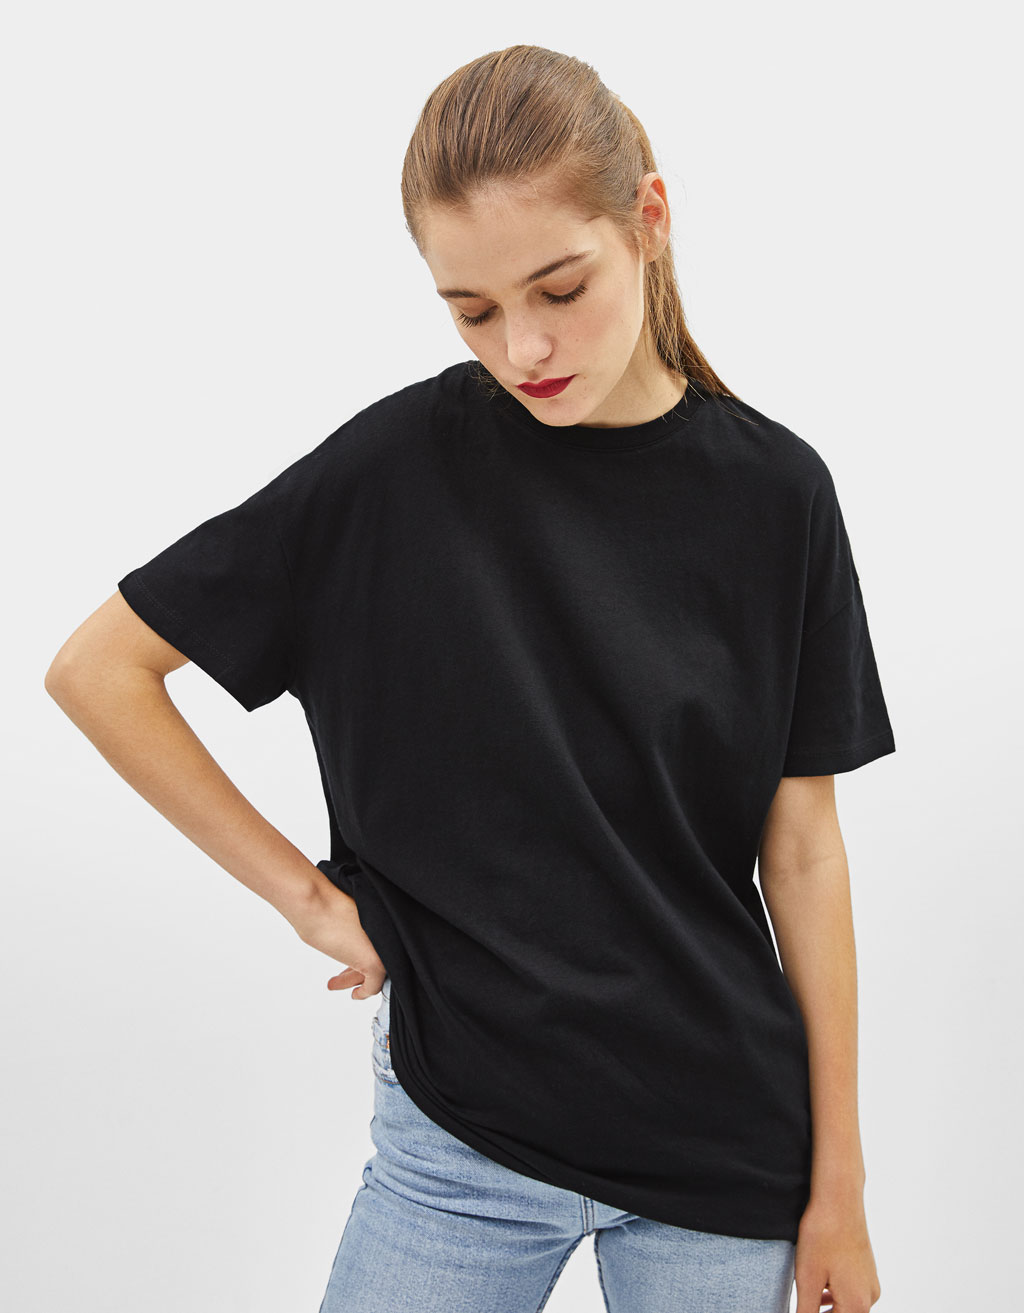 Oversized short sleeve T-shirt